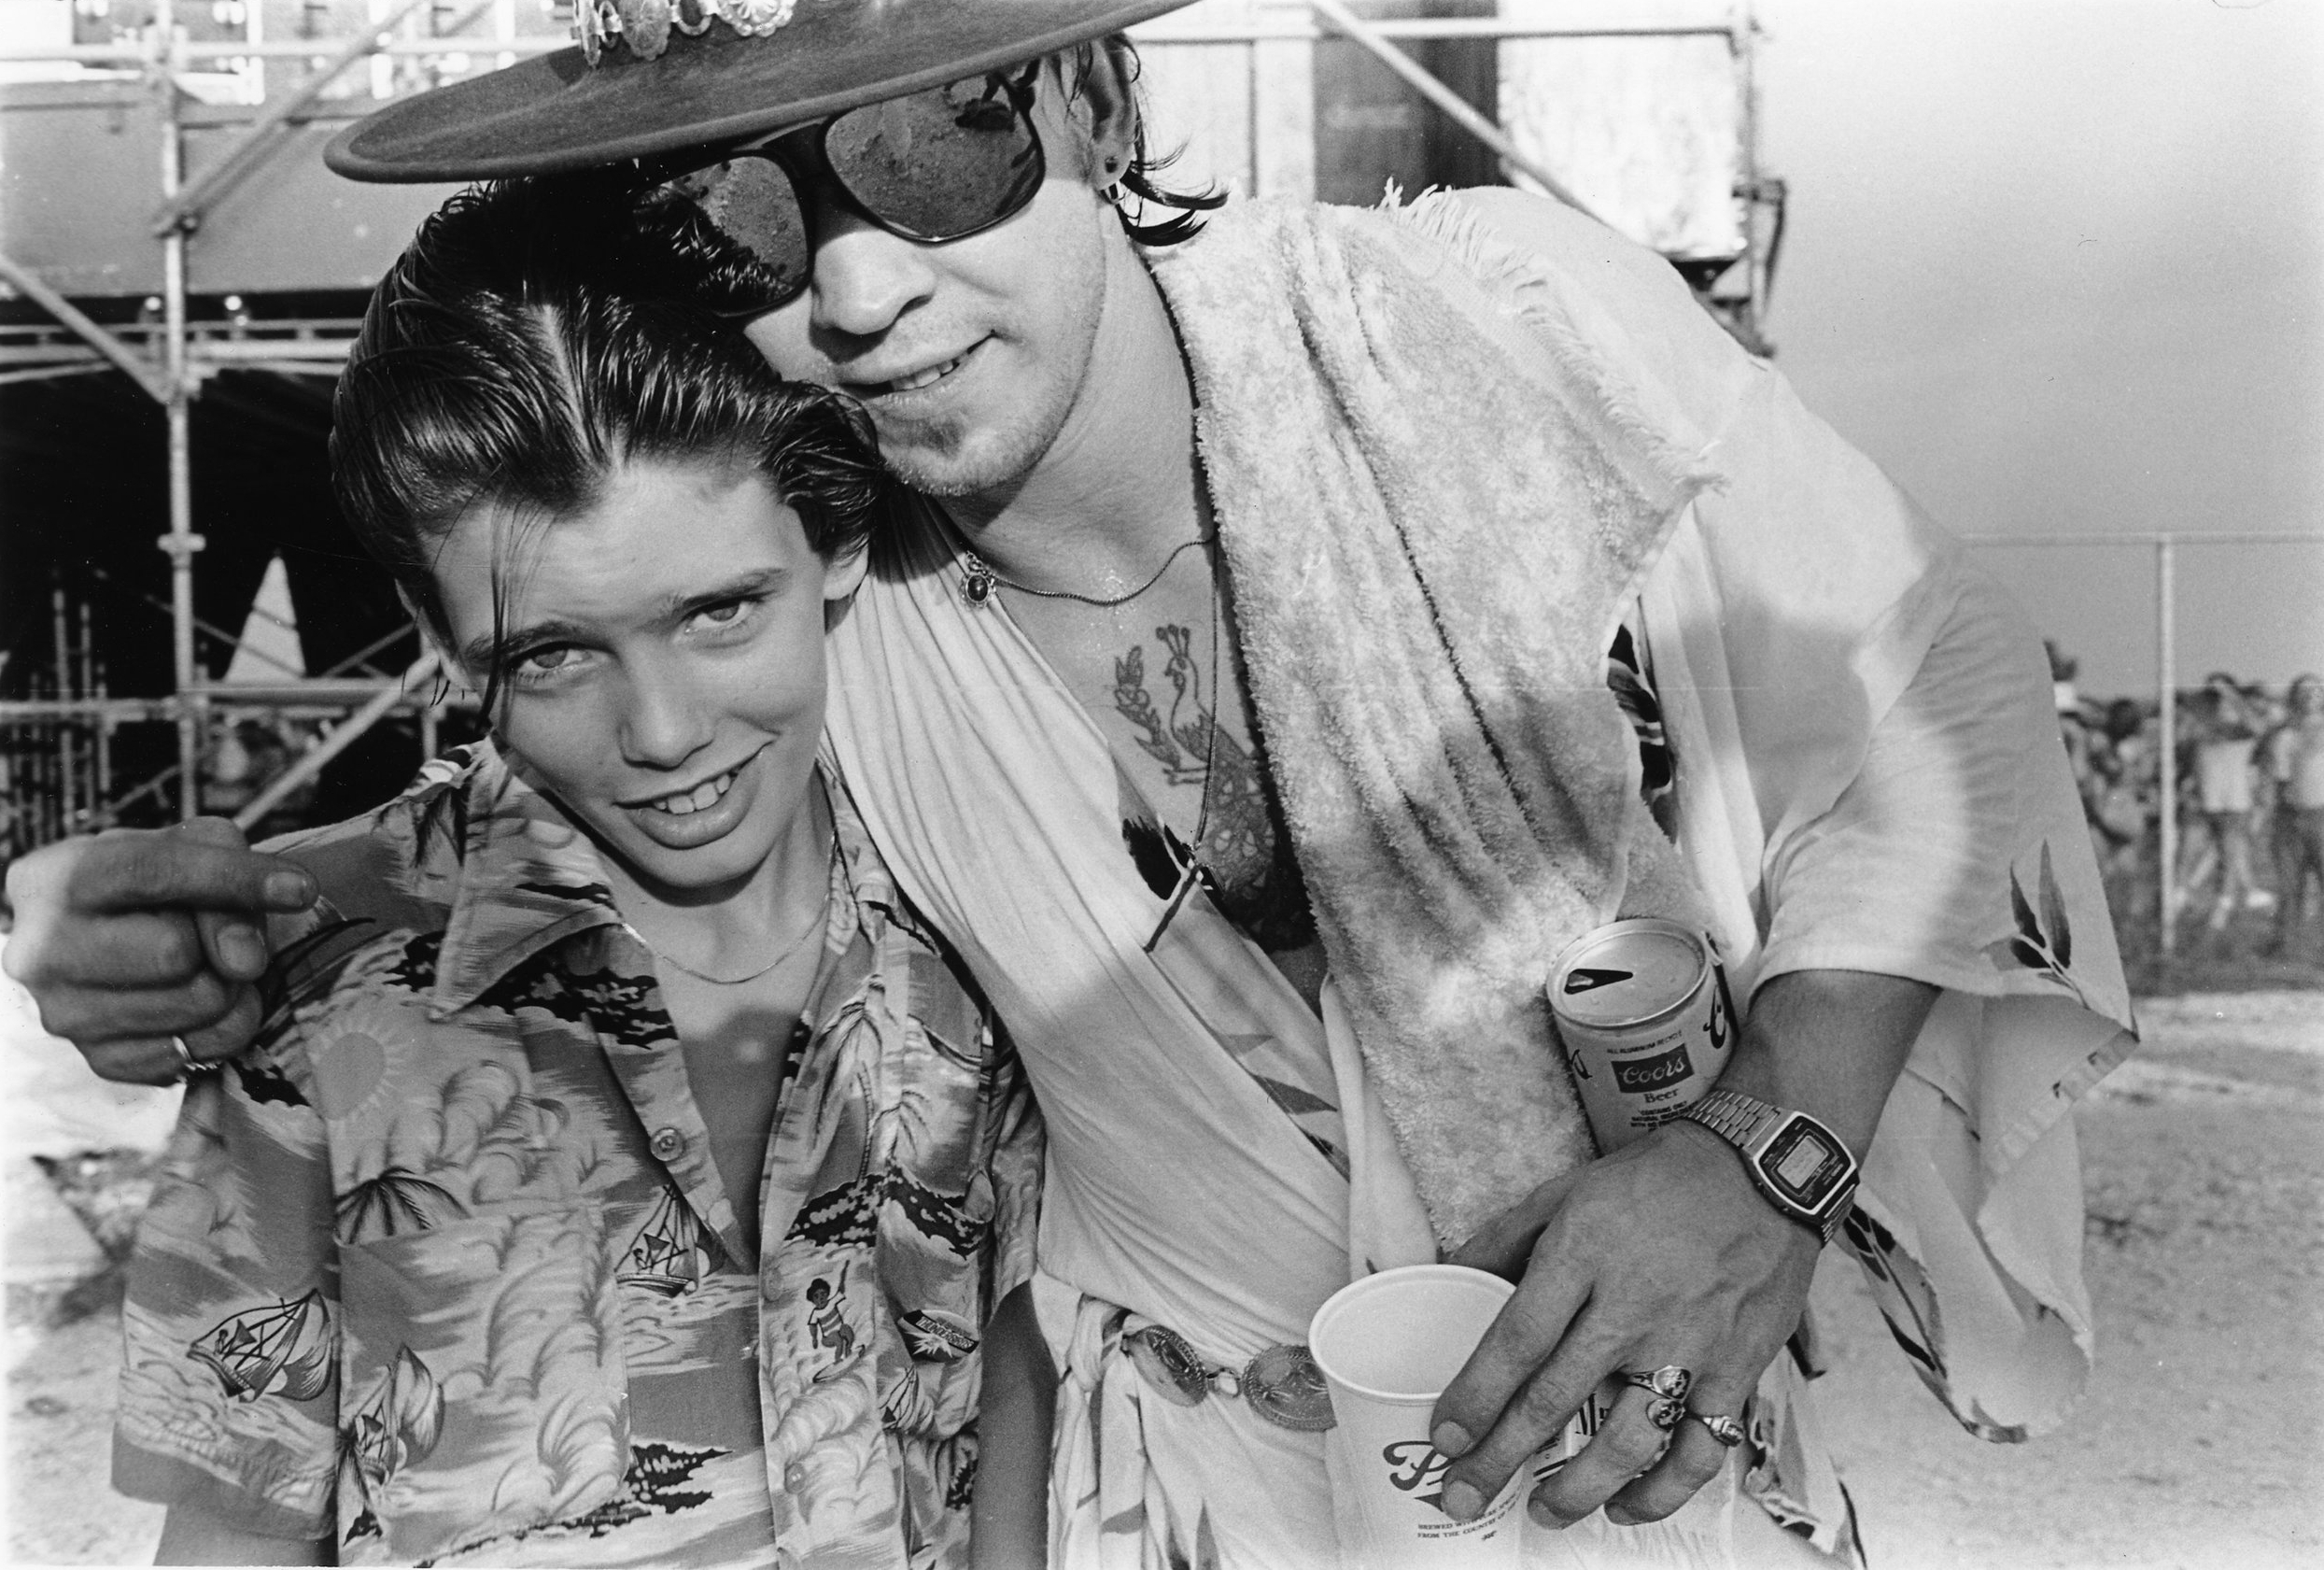 Little Charlie Sexton and Stevie Ray Vaughn